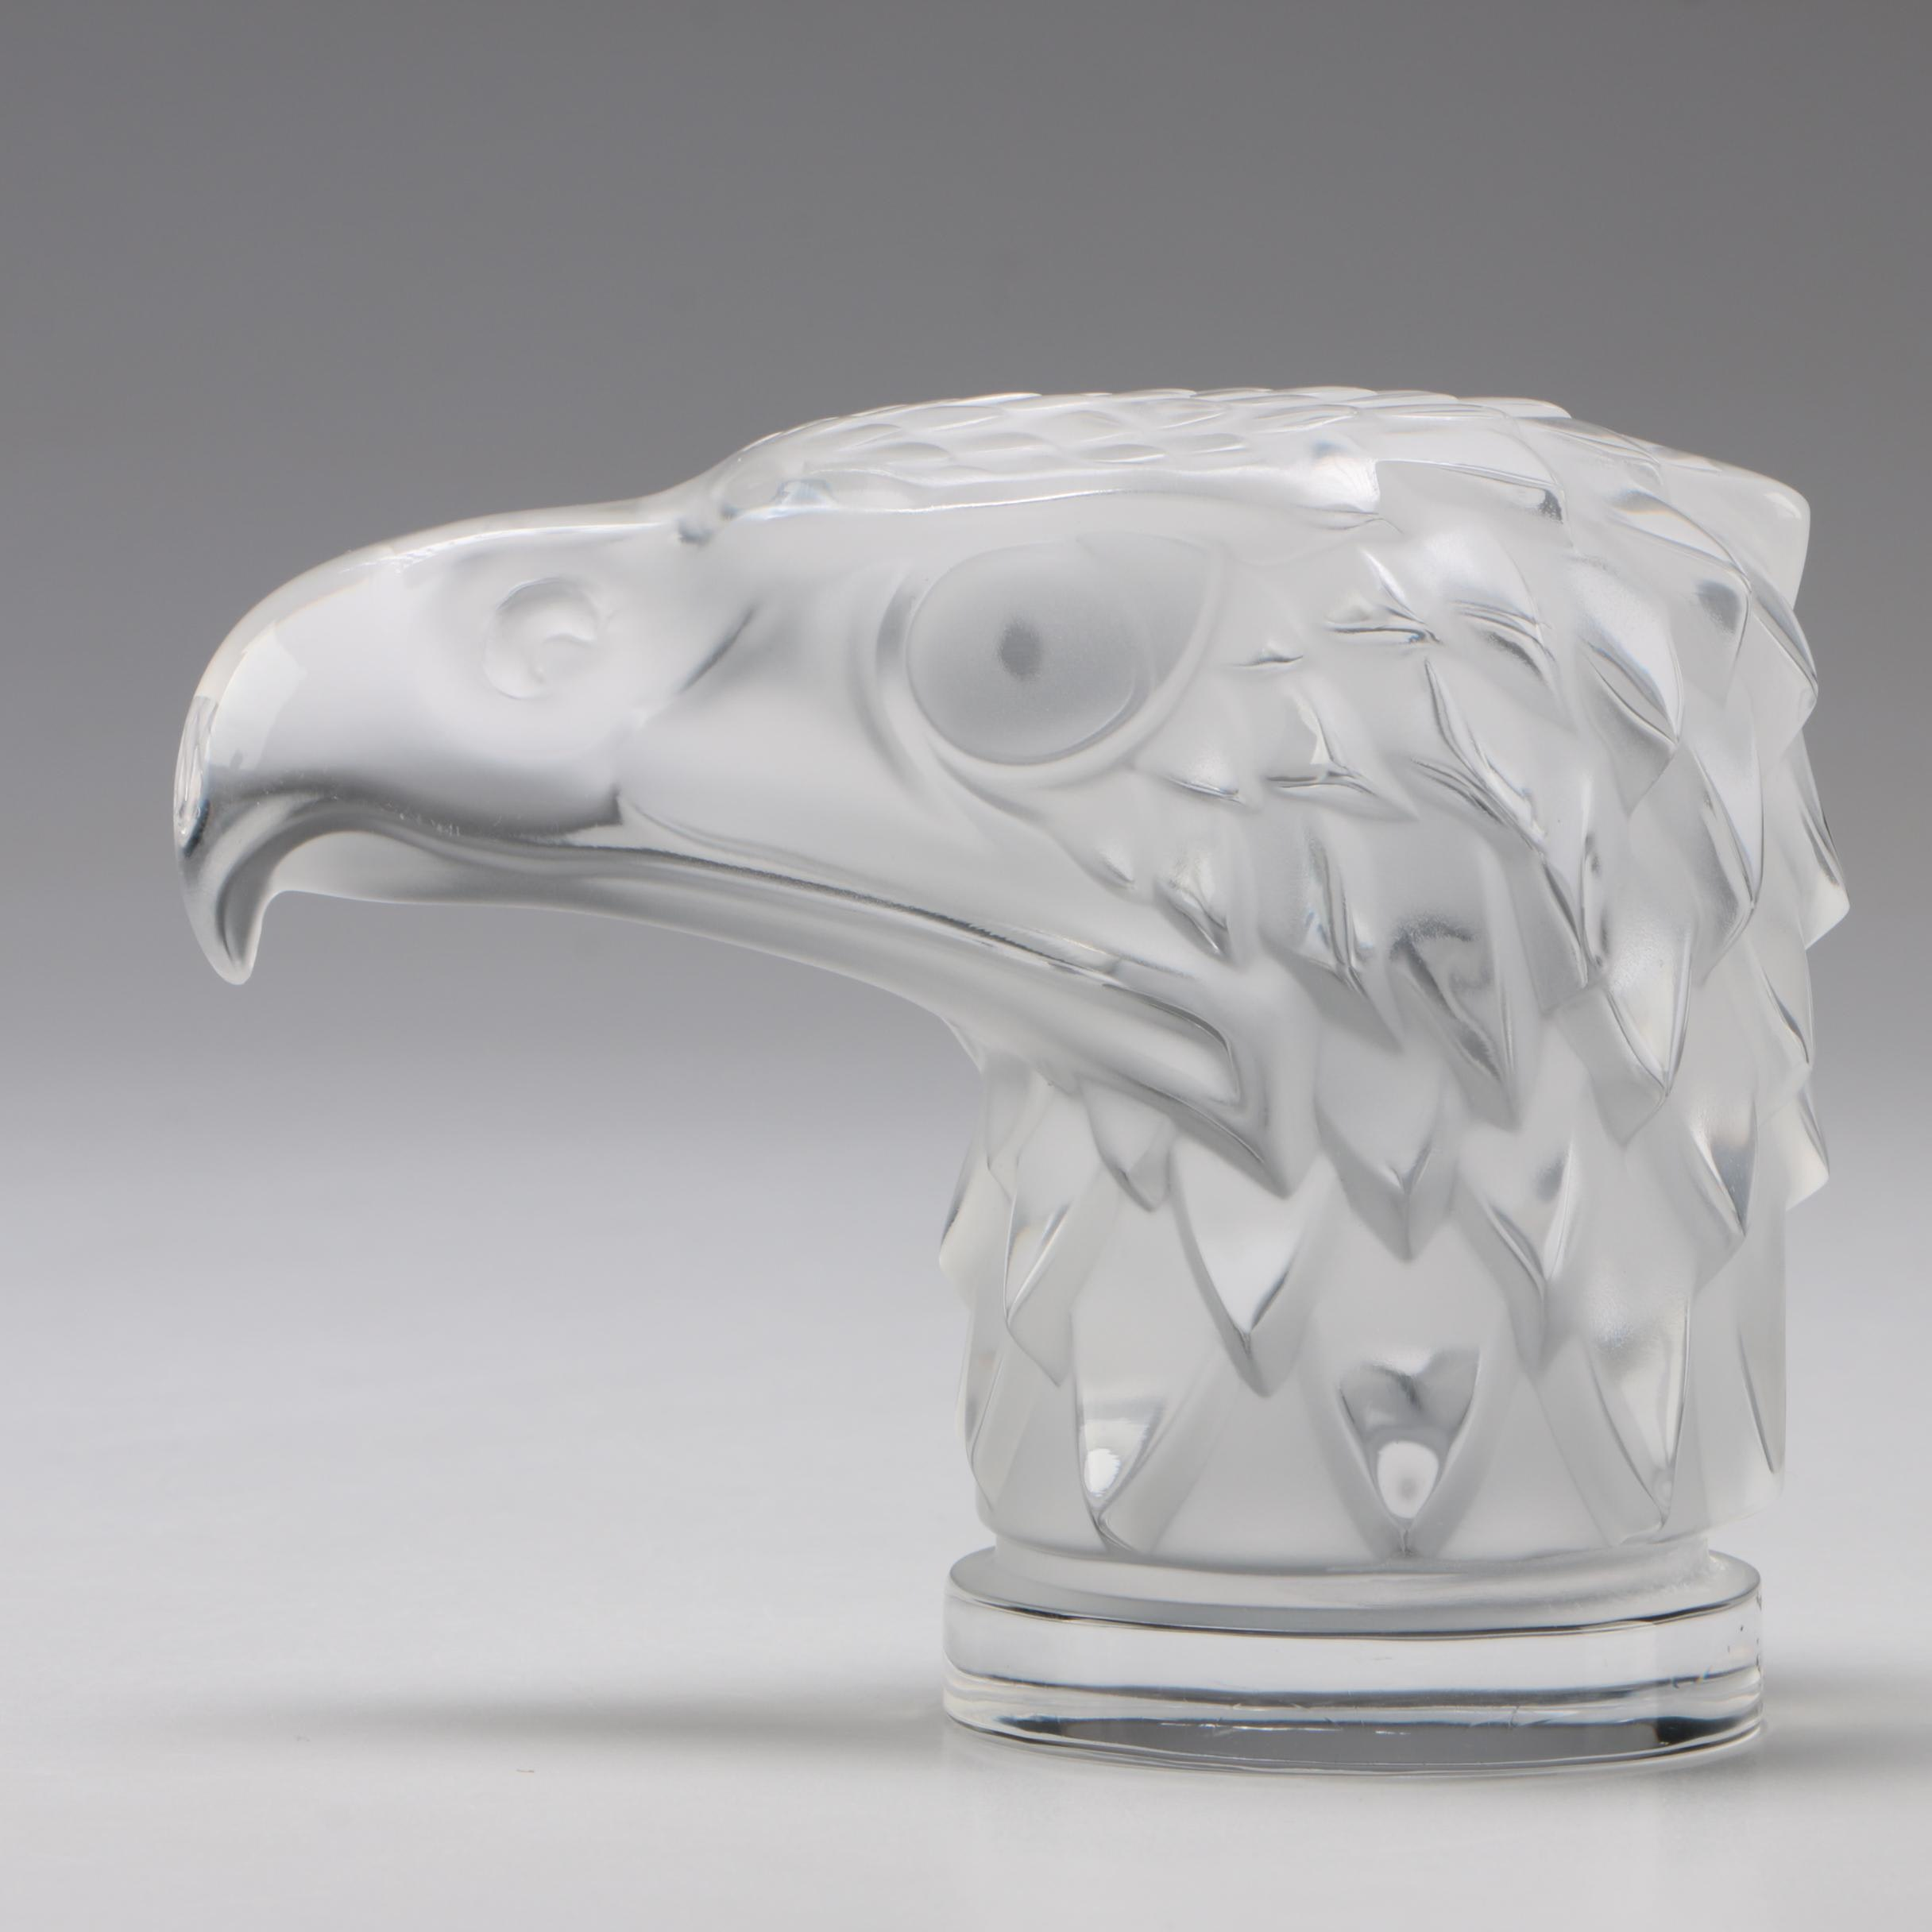 """Lalique """"Tete d'Aigle"""" Car Mascot Crystal Paperweight, Mid-Century"""